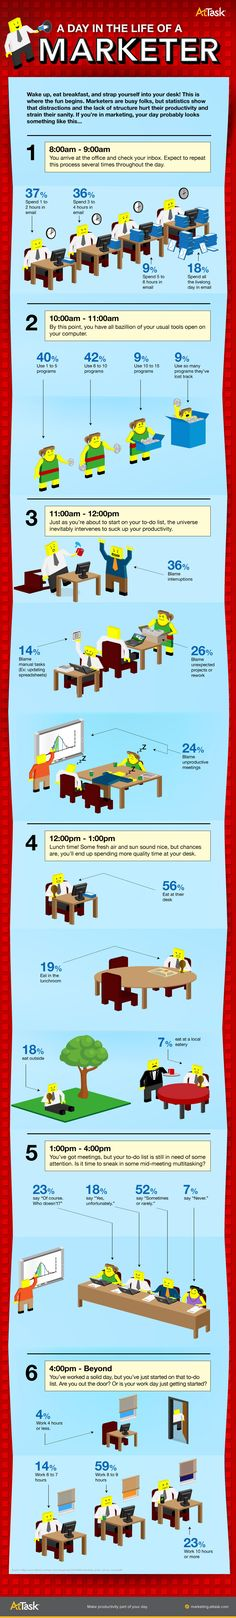 A Day in the Life of a Digital Marketer - #infographic #digitalmarketing  http://480degrees.com/